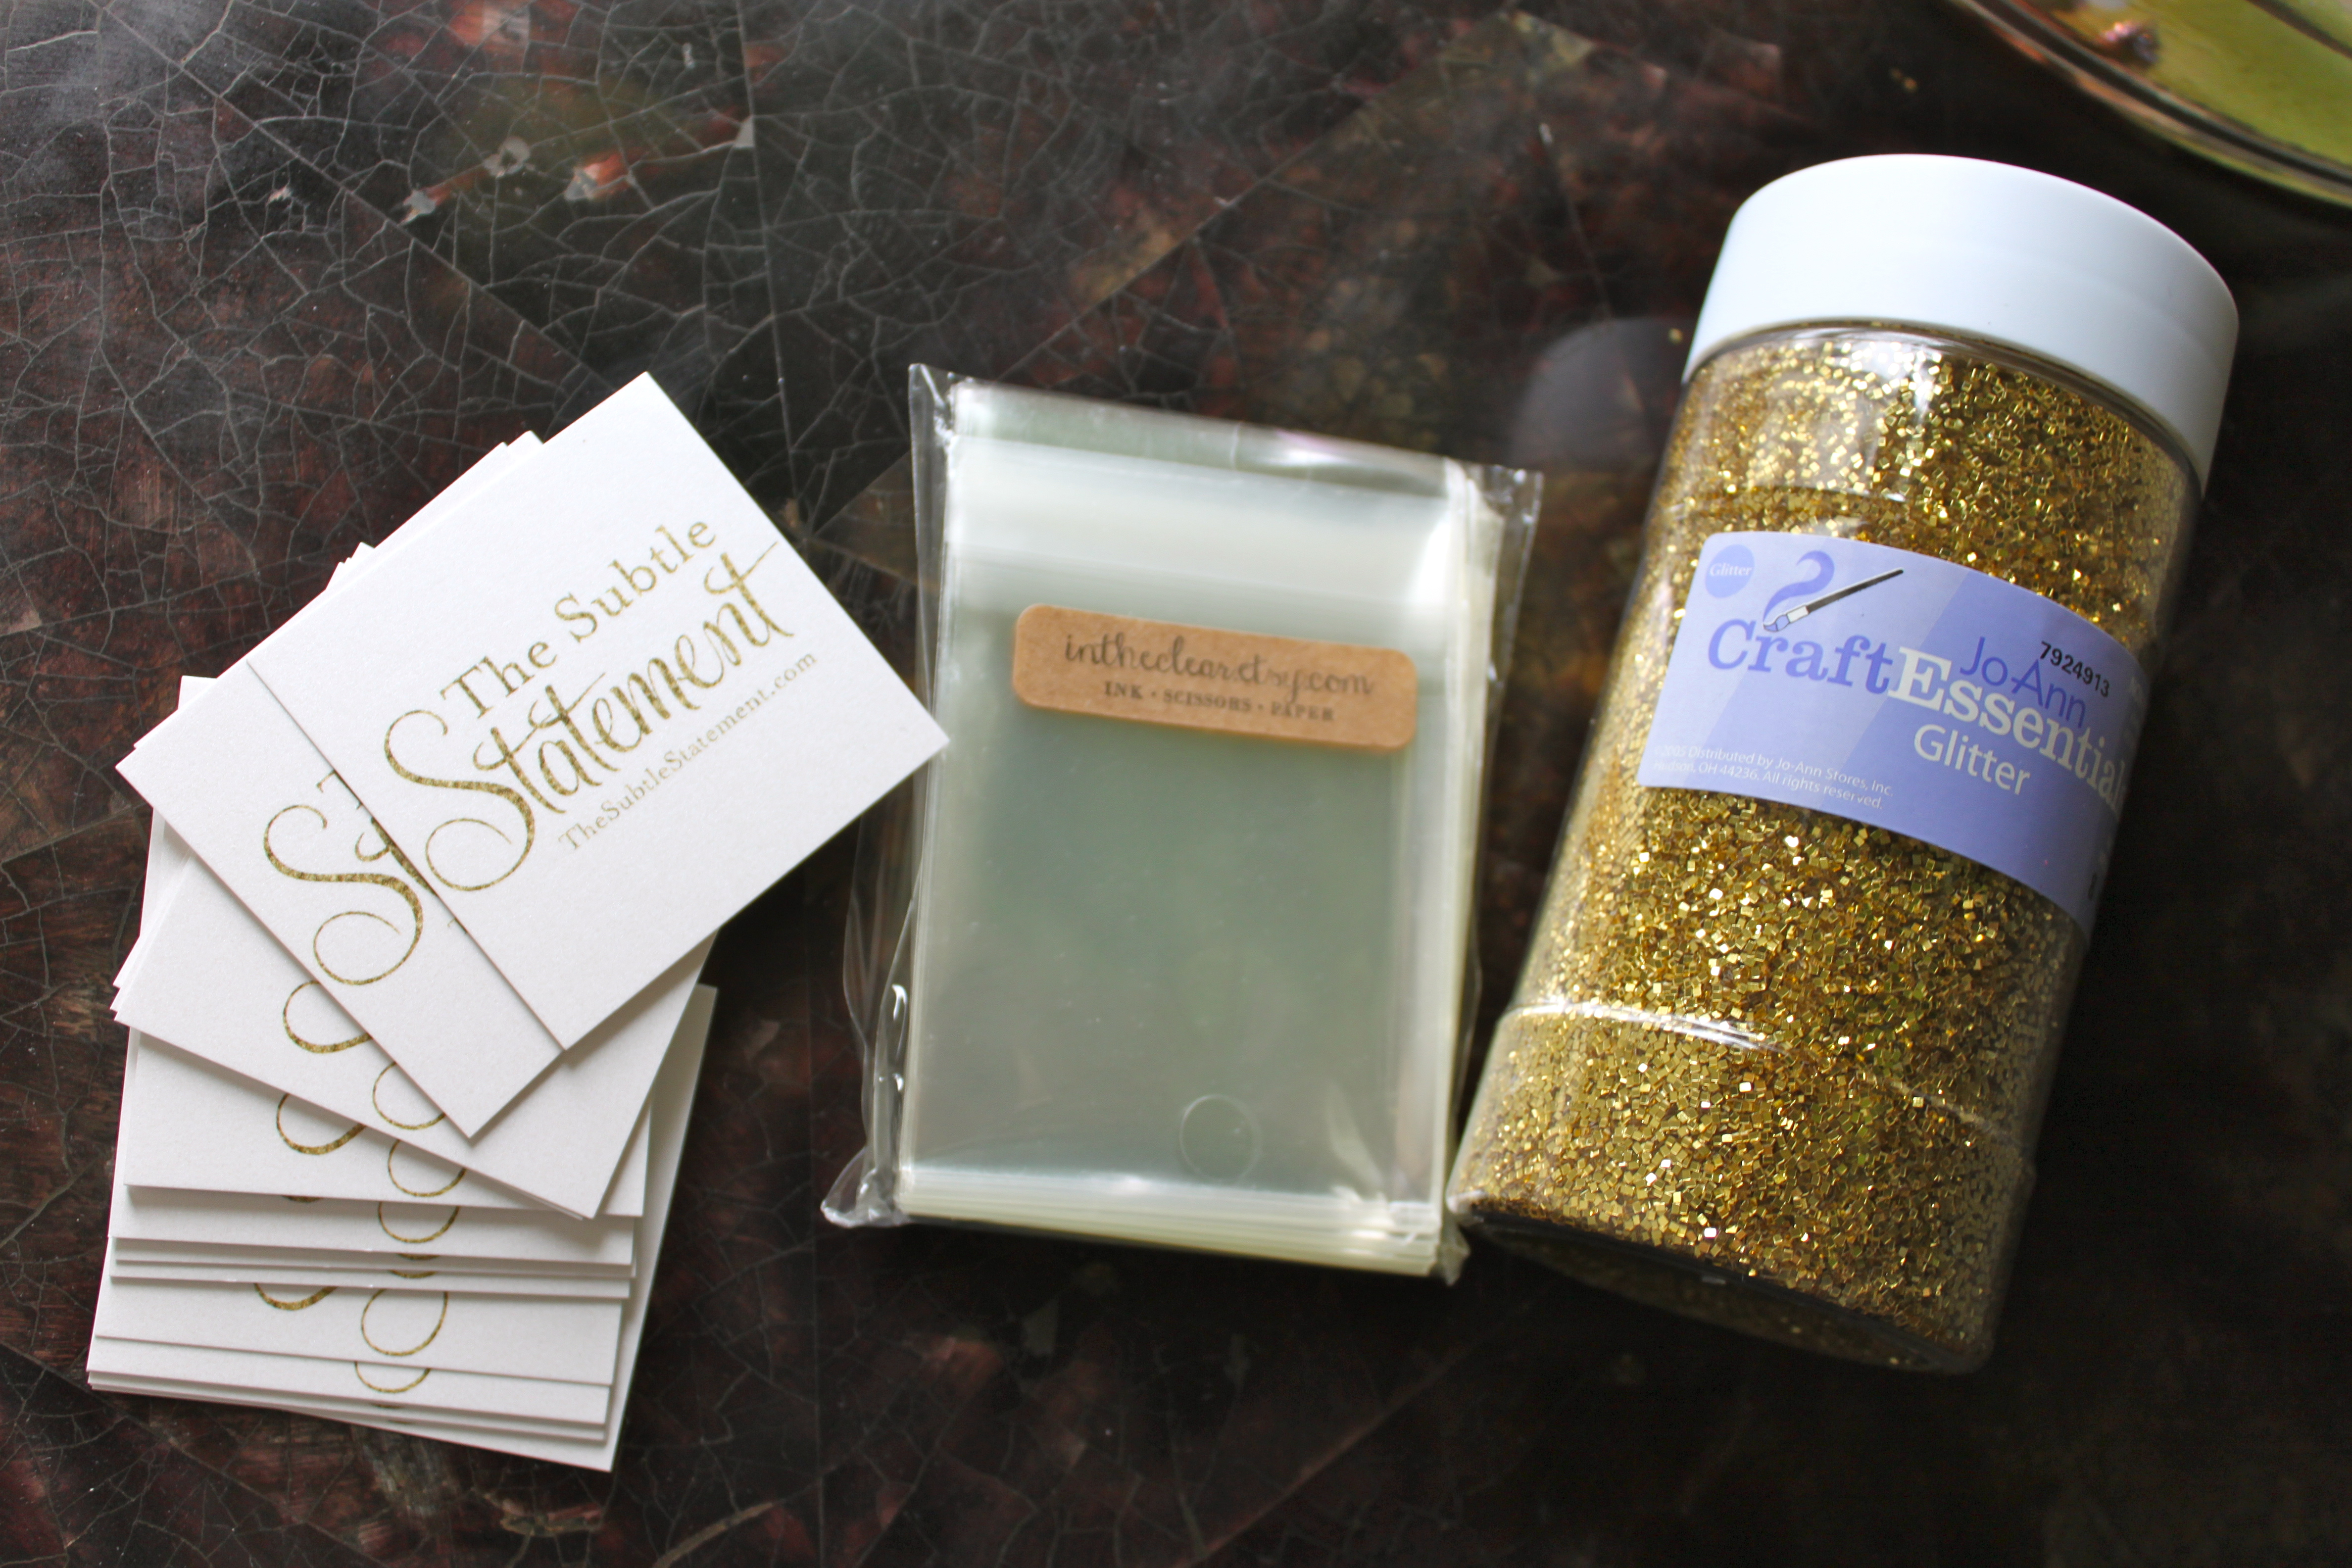 Weekend DIY: Glitter Business Cards | The Subtle Statement